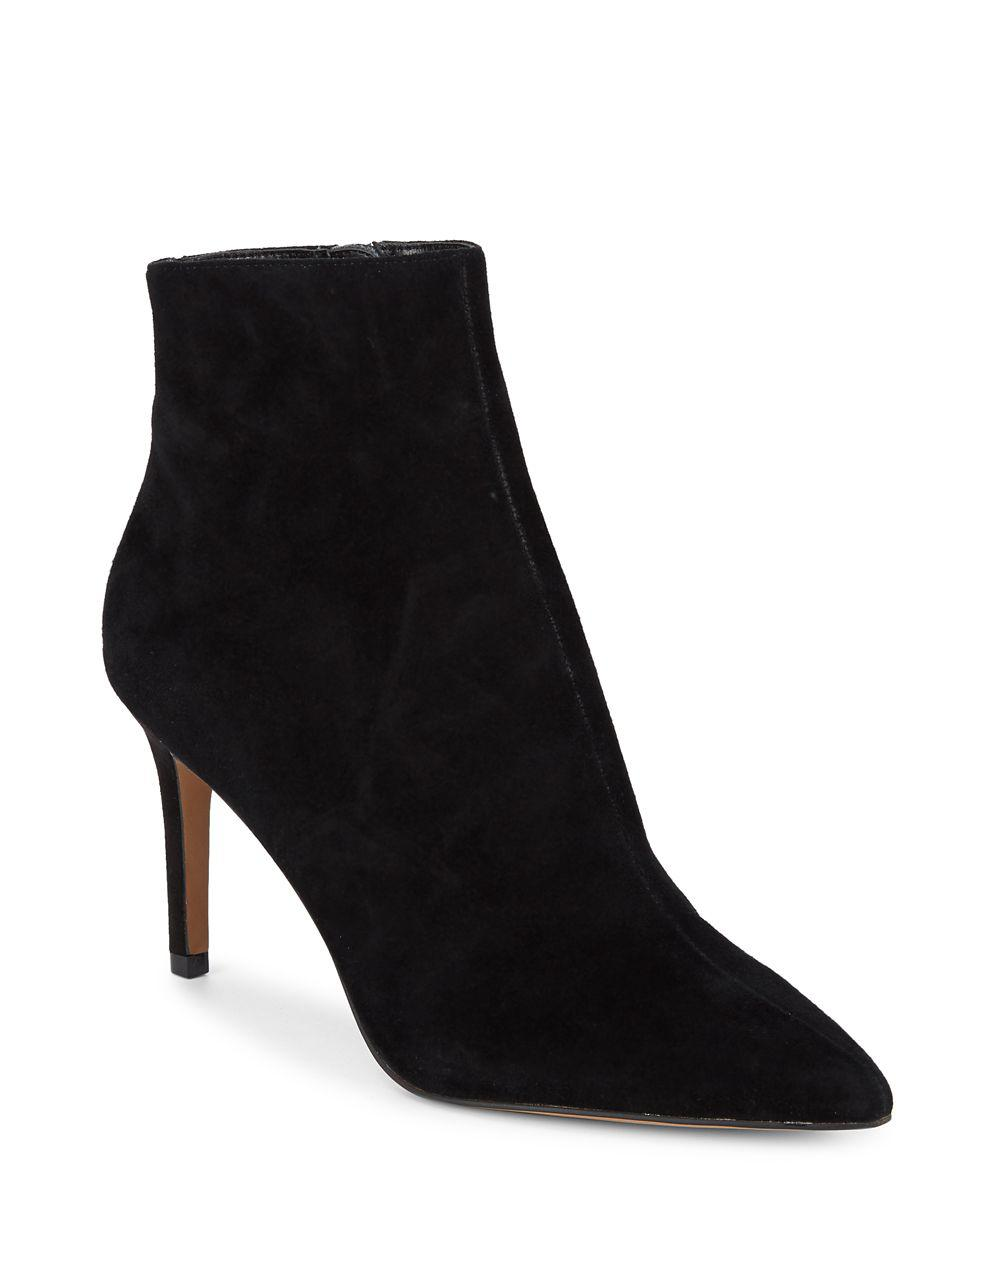 007981bc7 Steven by Steve Madden Logic Suede Booties in Black - Lyst